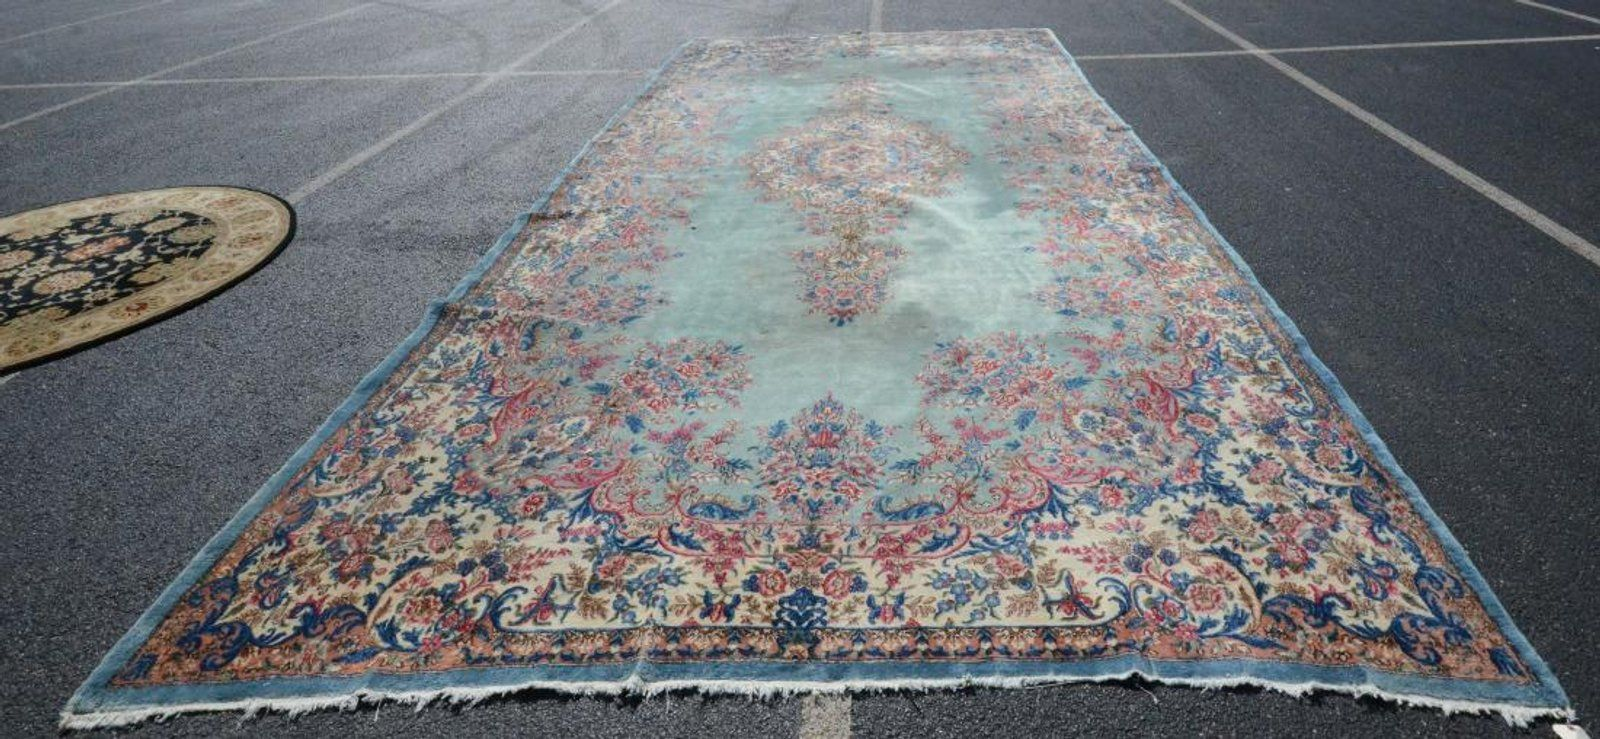 9 10 X 20 2 Kirman Carpet Auction Antiques Bohemian Rug